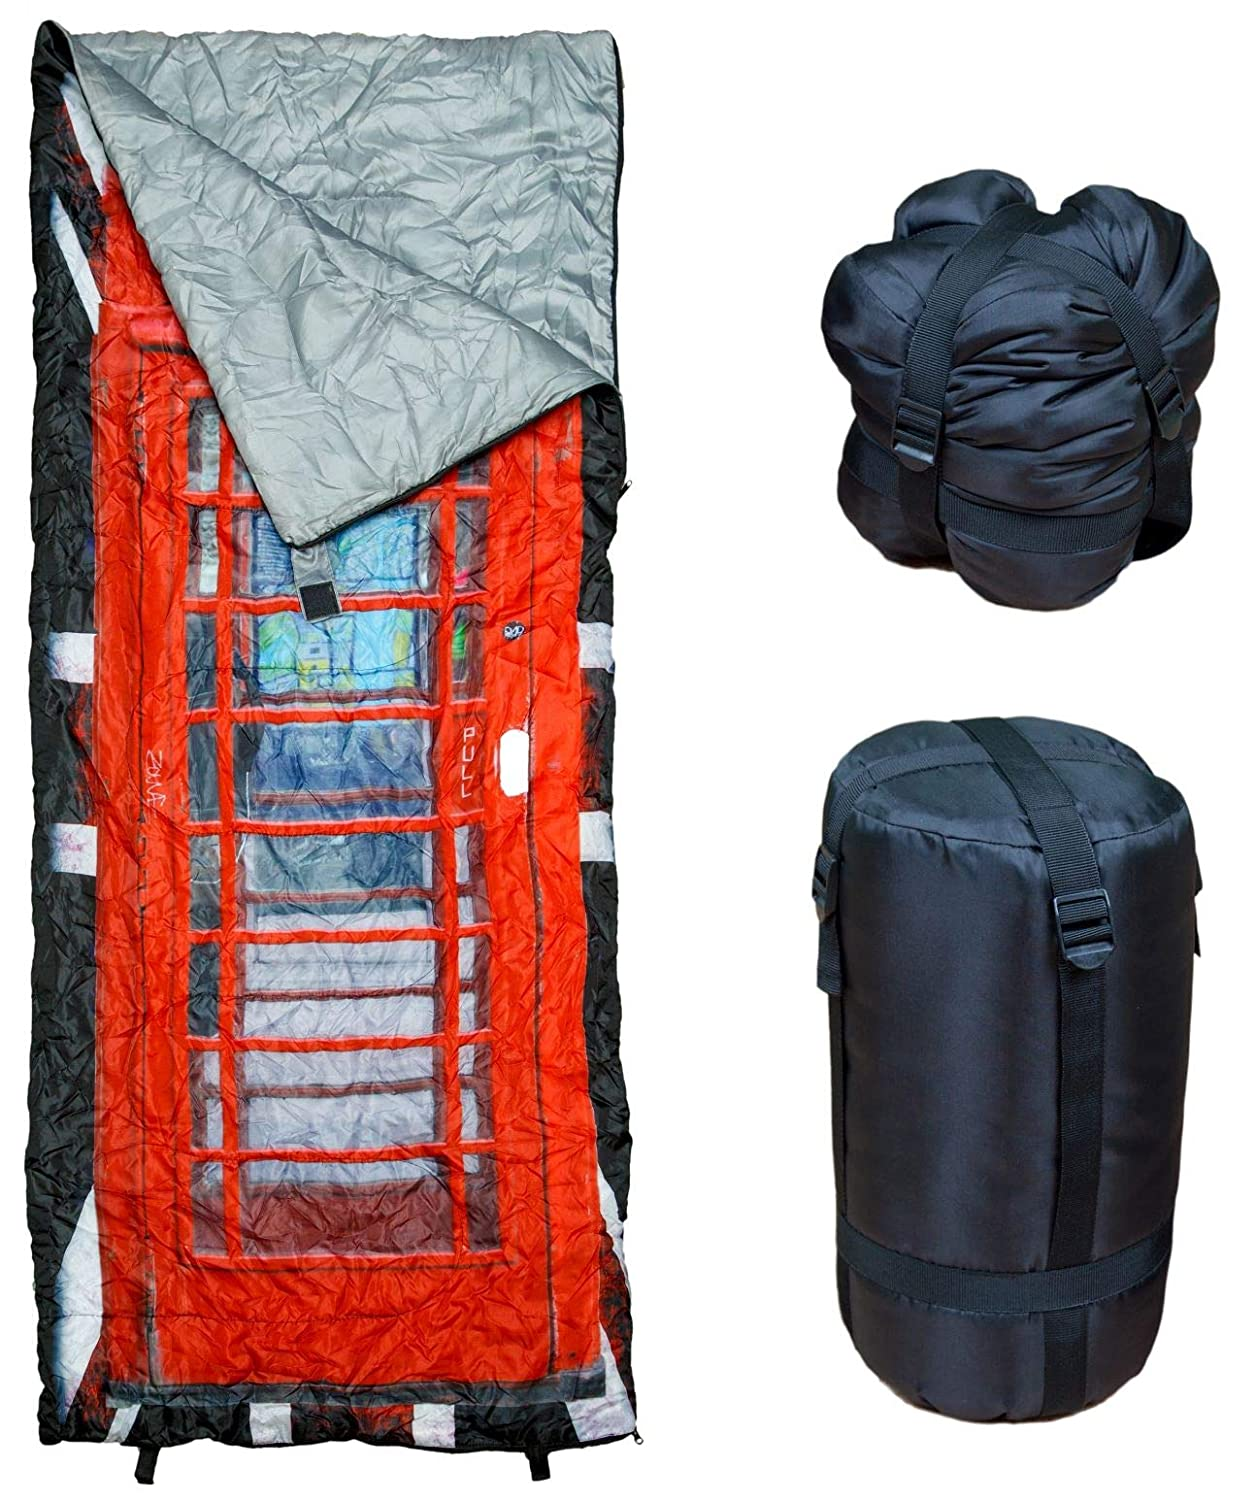 Great for Kids Ultra Light and Compact Bags are Perfect for Hiking Phonebooth REVALCAMP Lightweight Sleeping Bag Backpacking Teens /& Adults Camping /& Travel. Indoor /& Outdoor use